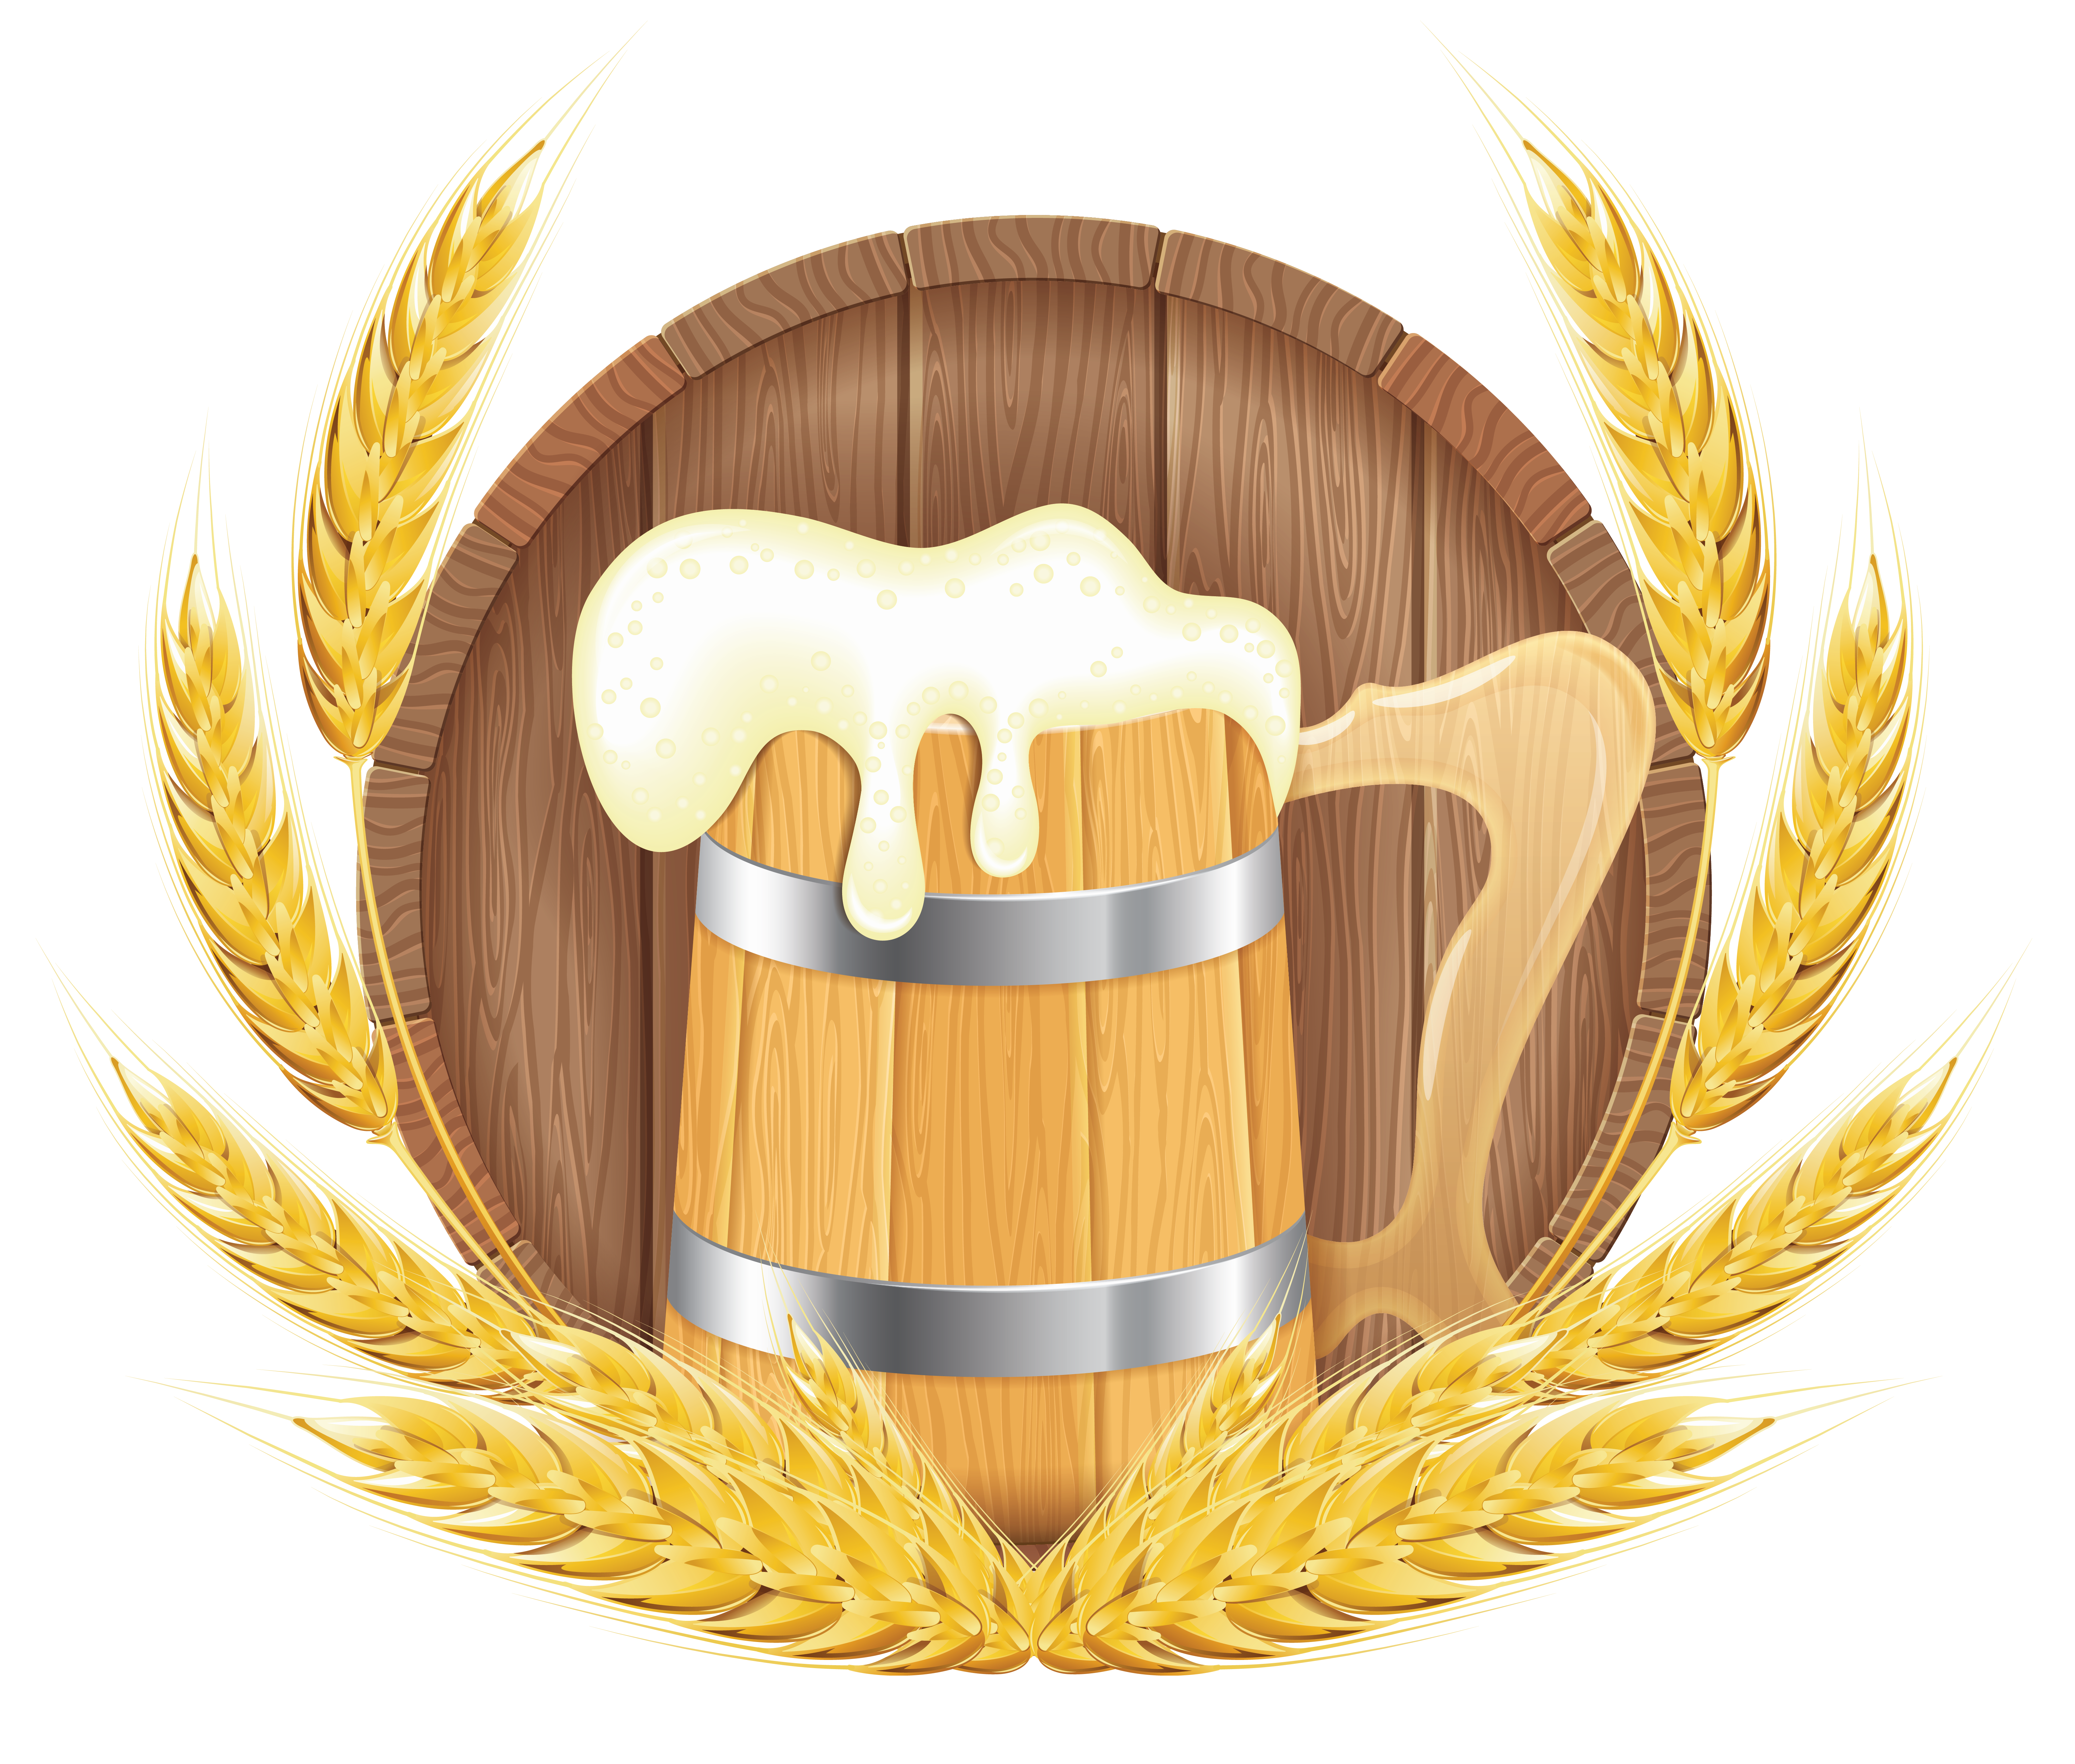 Wheat clipart cartoon. Oktoberfest beer barrel mug